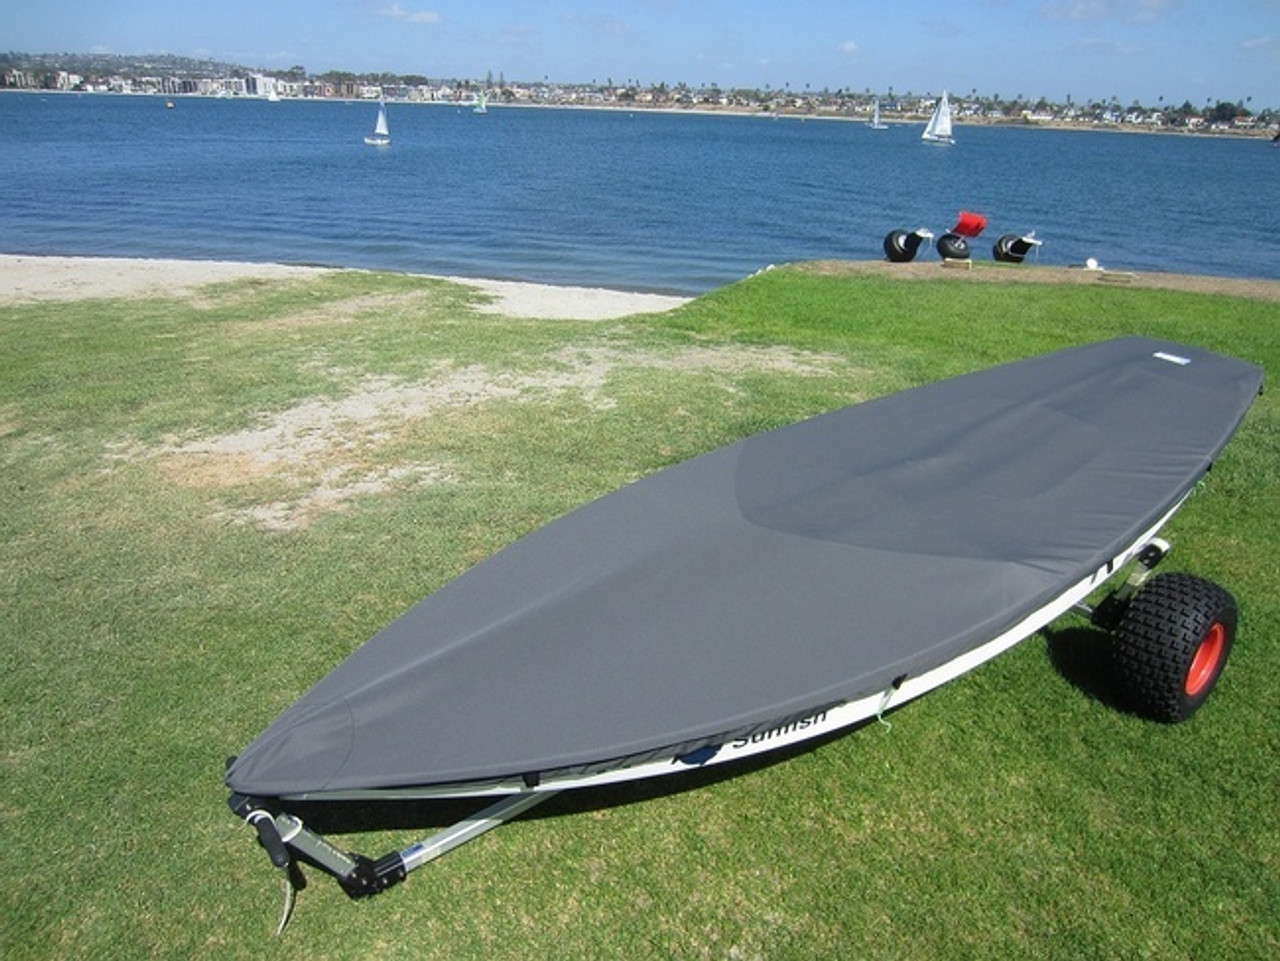 SUNFISH SAILBOAT TOP COVER - BOAT DECK COVER